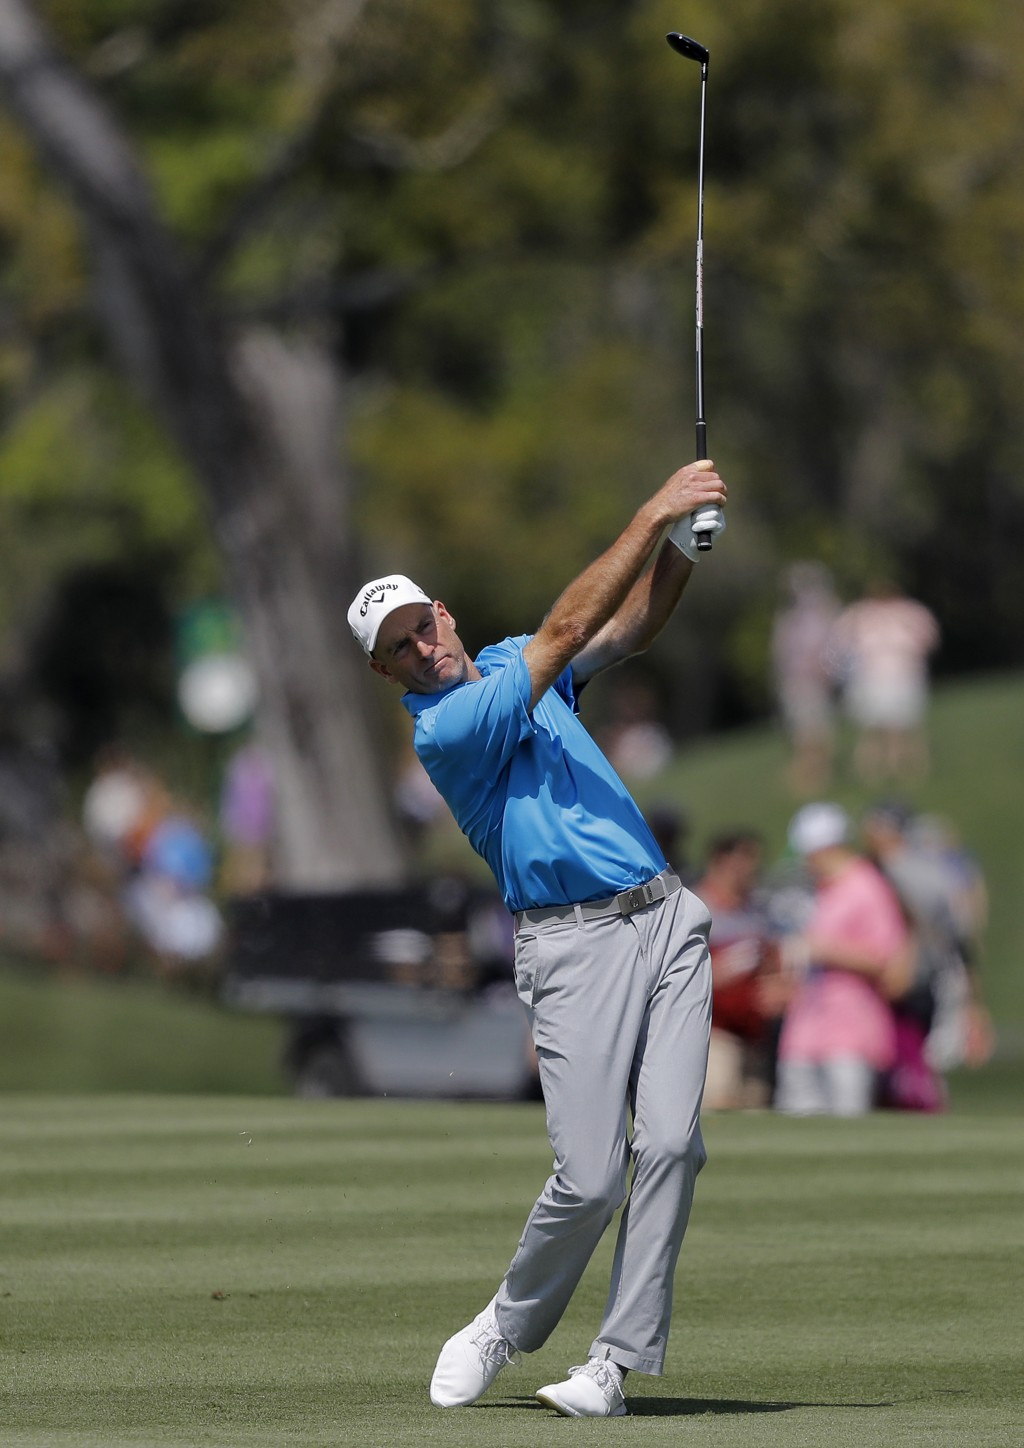 Jim Furyk hits his second shot off the 16th fairway during the second round of The Players Championship golf tournament Friday, March 15, 2019, in Pon